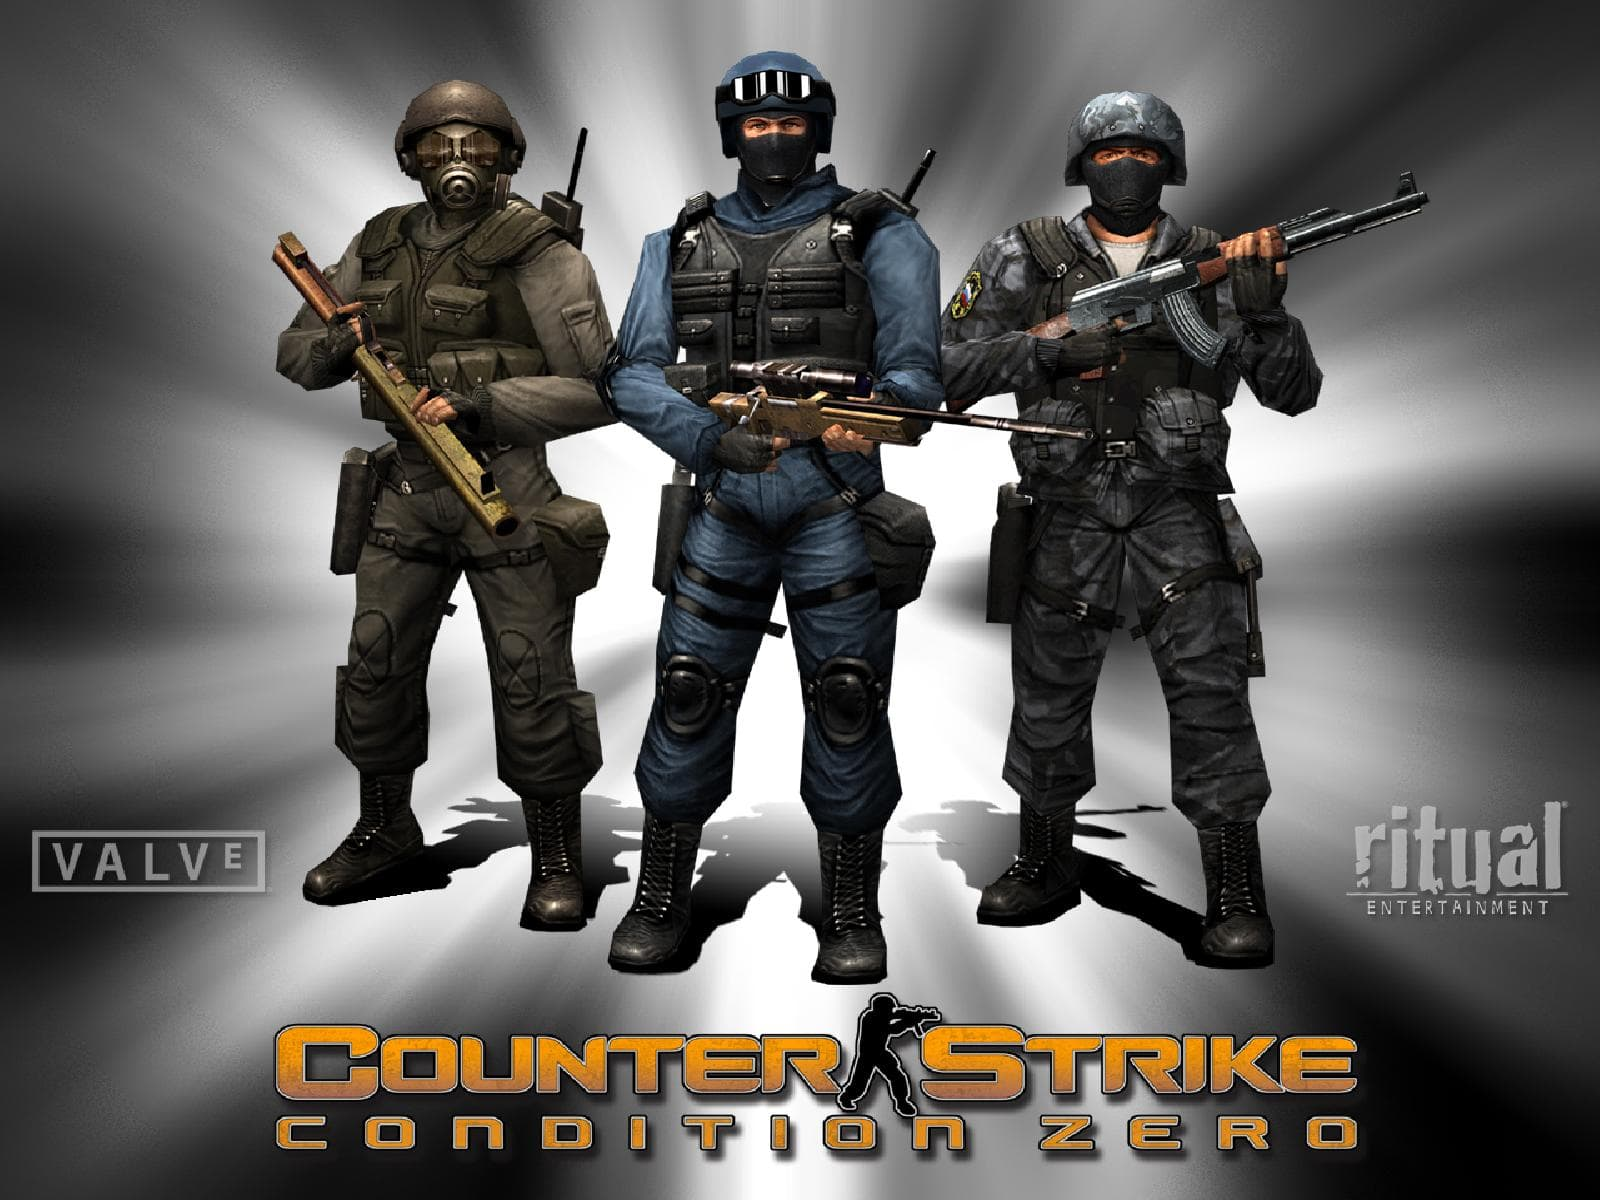 Counter-Strike: Condition Zero HQ wallpapers